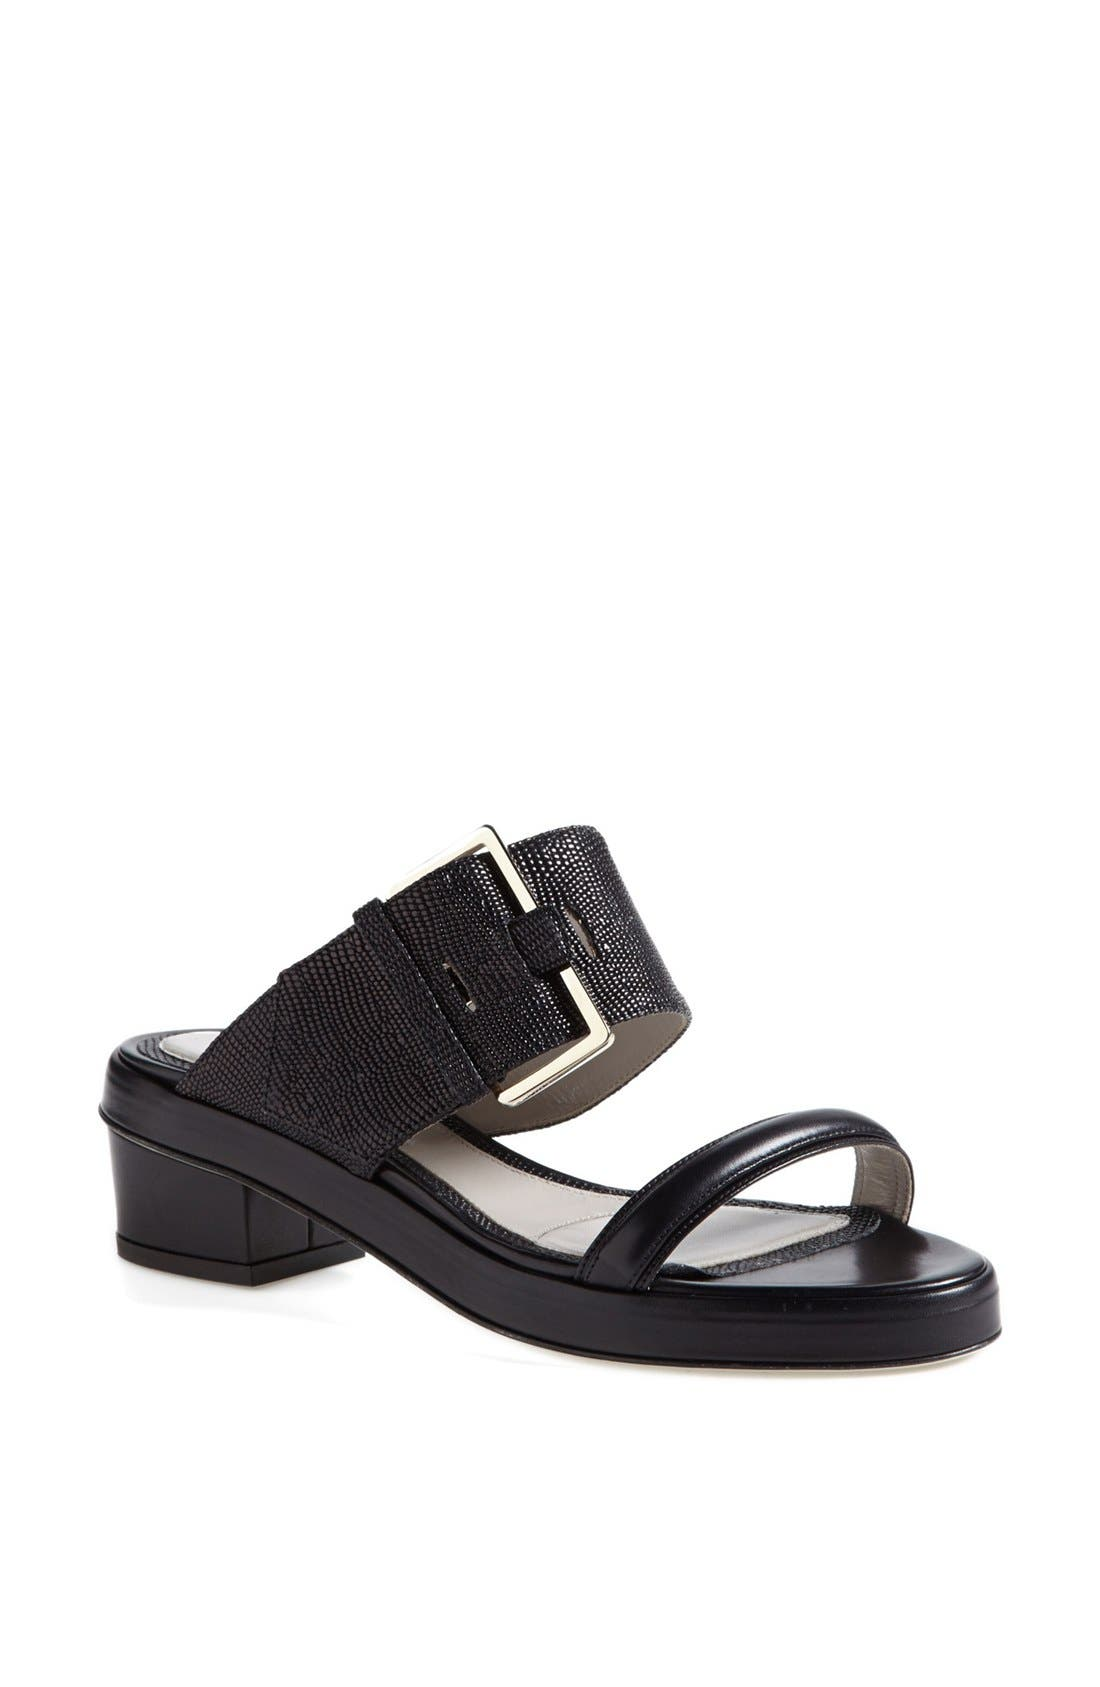 Alternate Image 1 Selected - Jason Wu Double Strap Sandal